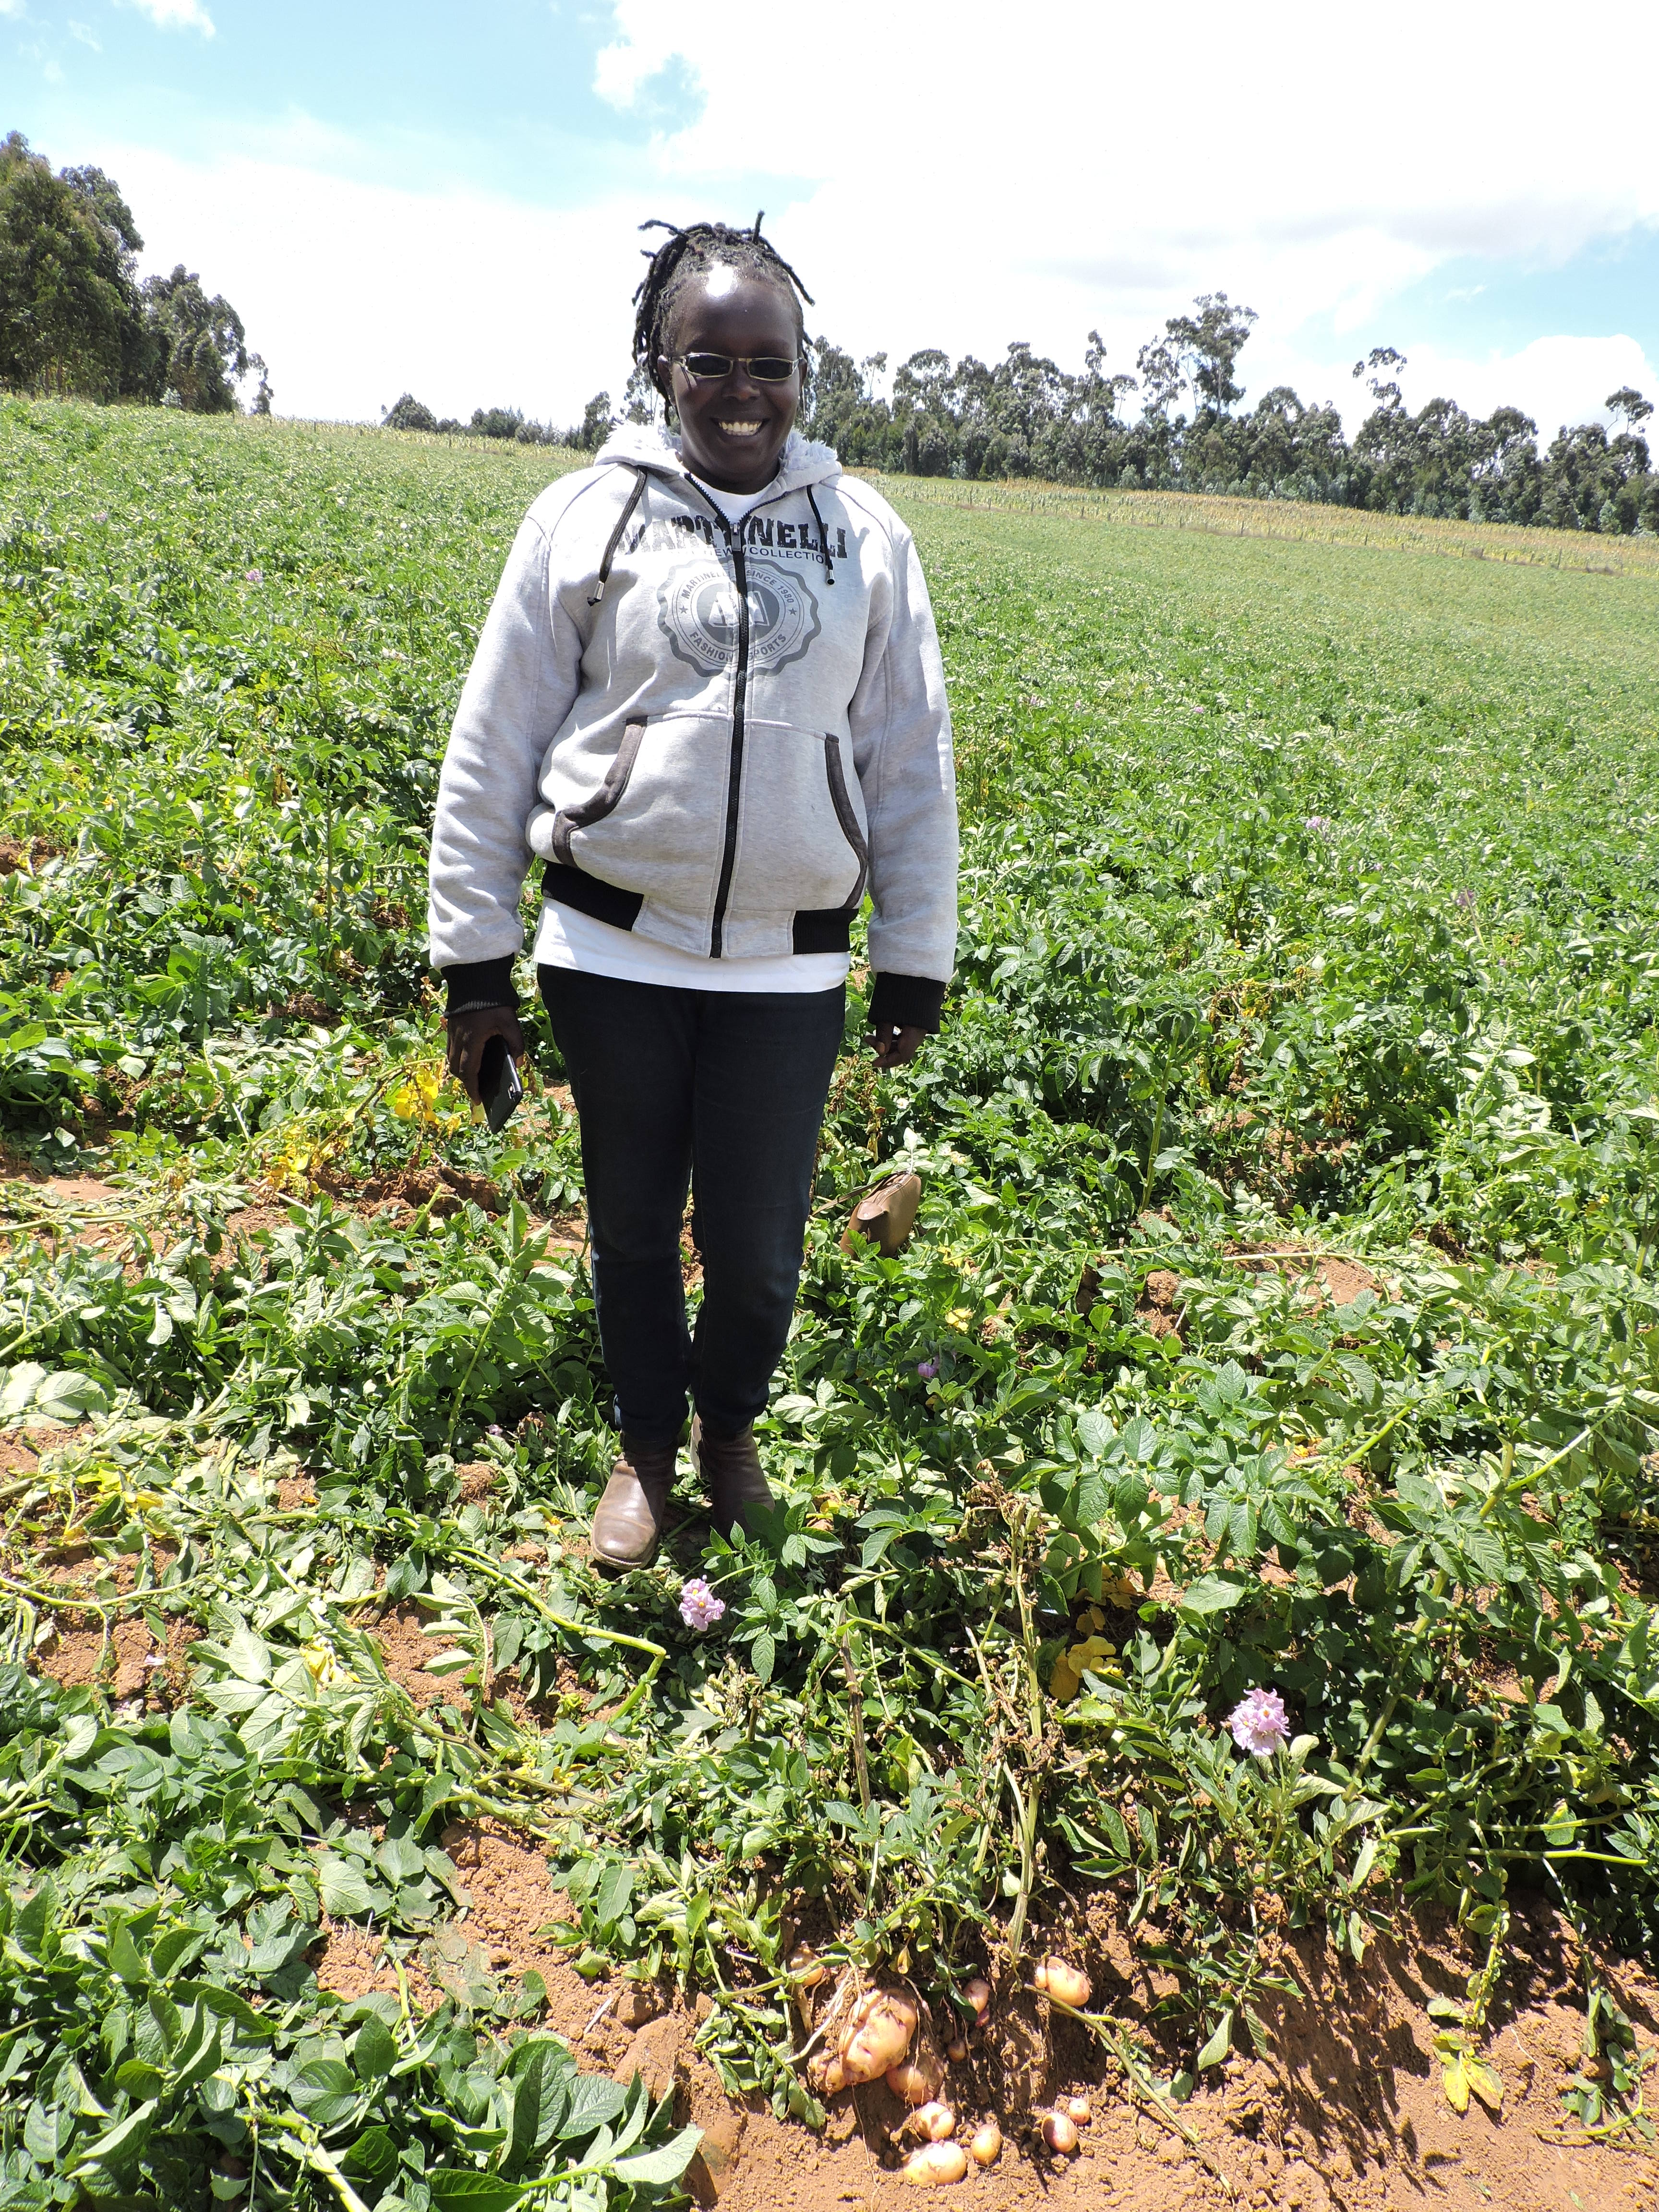 Farmers benefitting from Irish Aid support to potato farming in Nyandarua County, Kenya